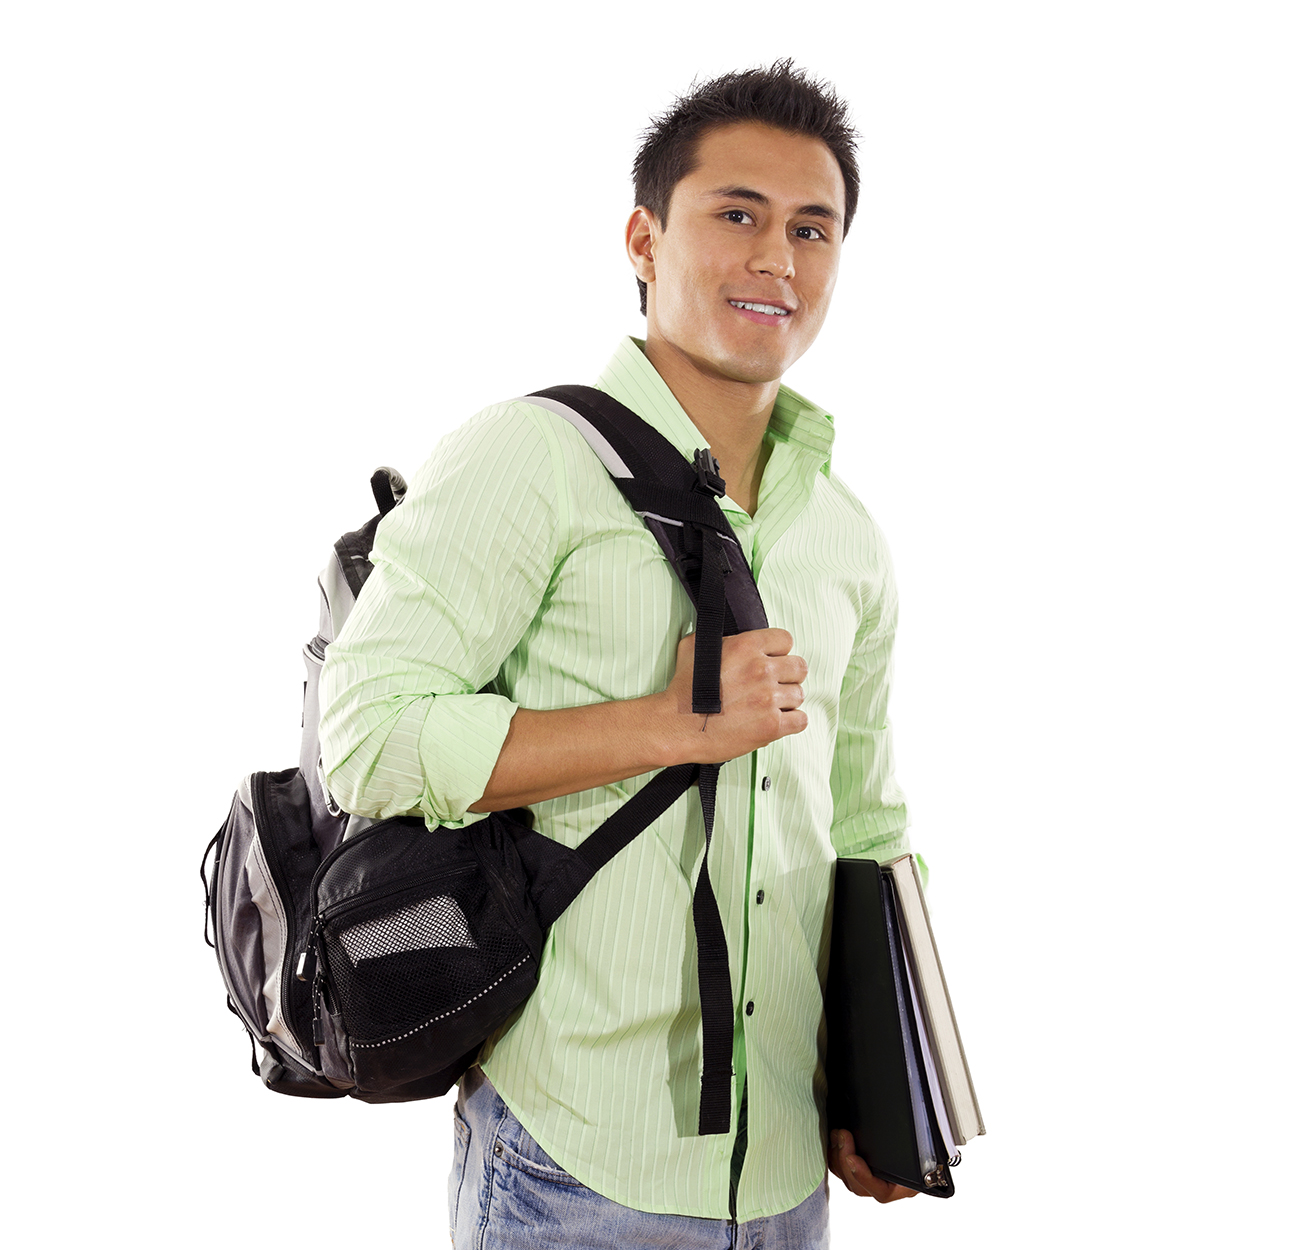 guy-with-backpack